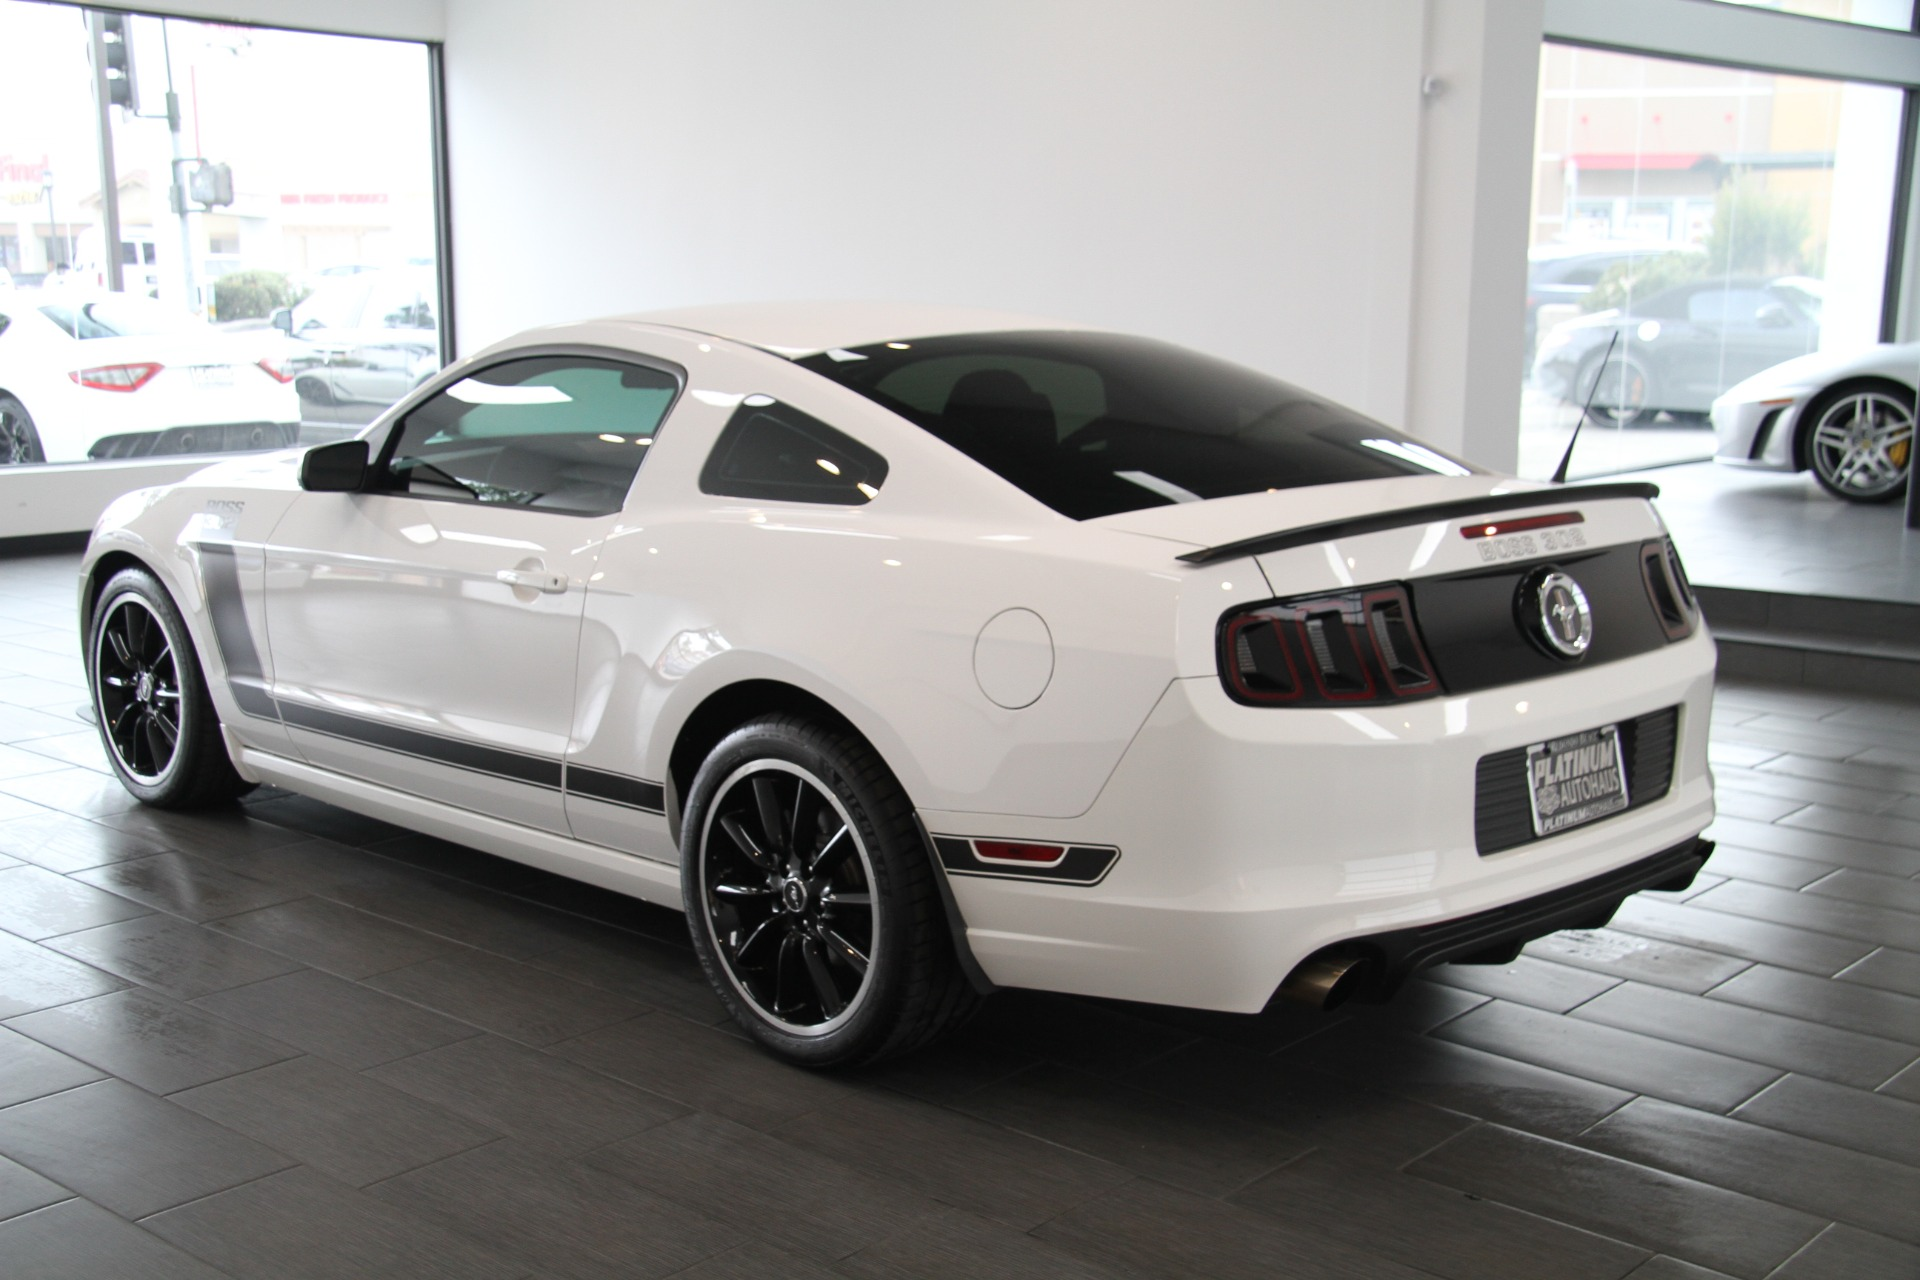 2013 Ford Mustang Boss 302 Stock 267204 For Sale Near